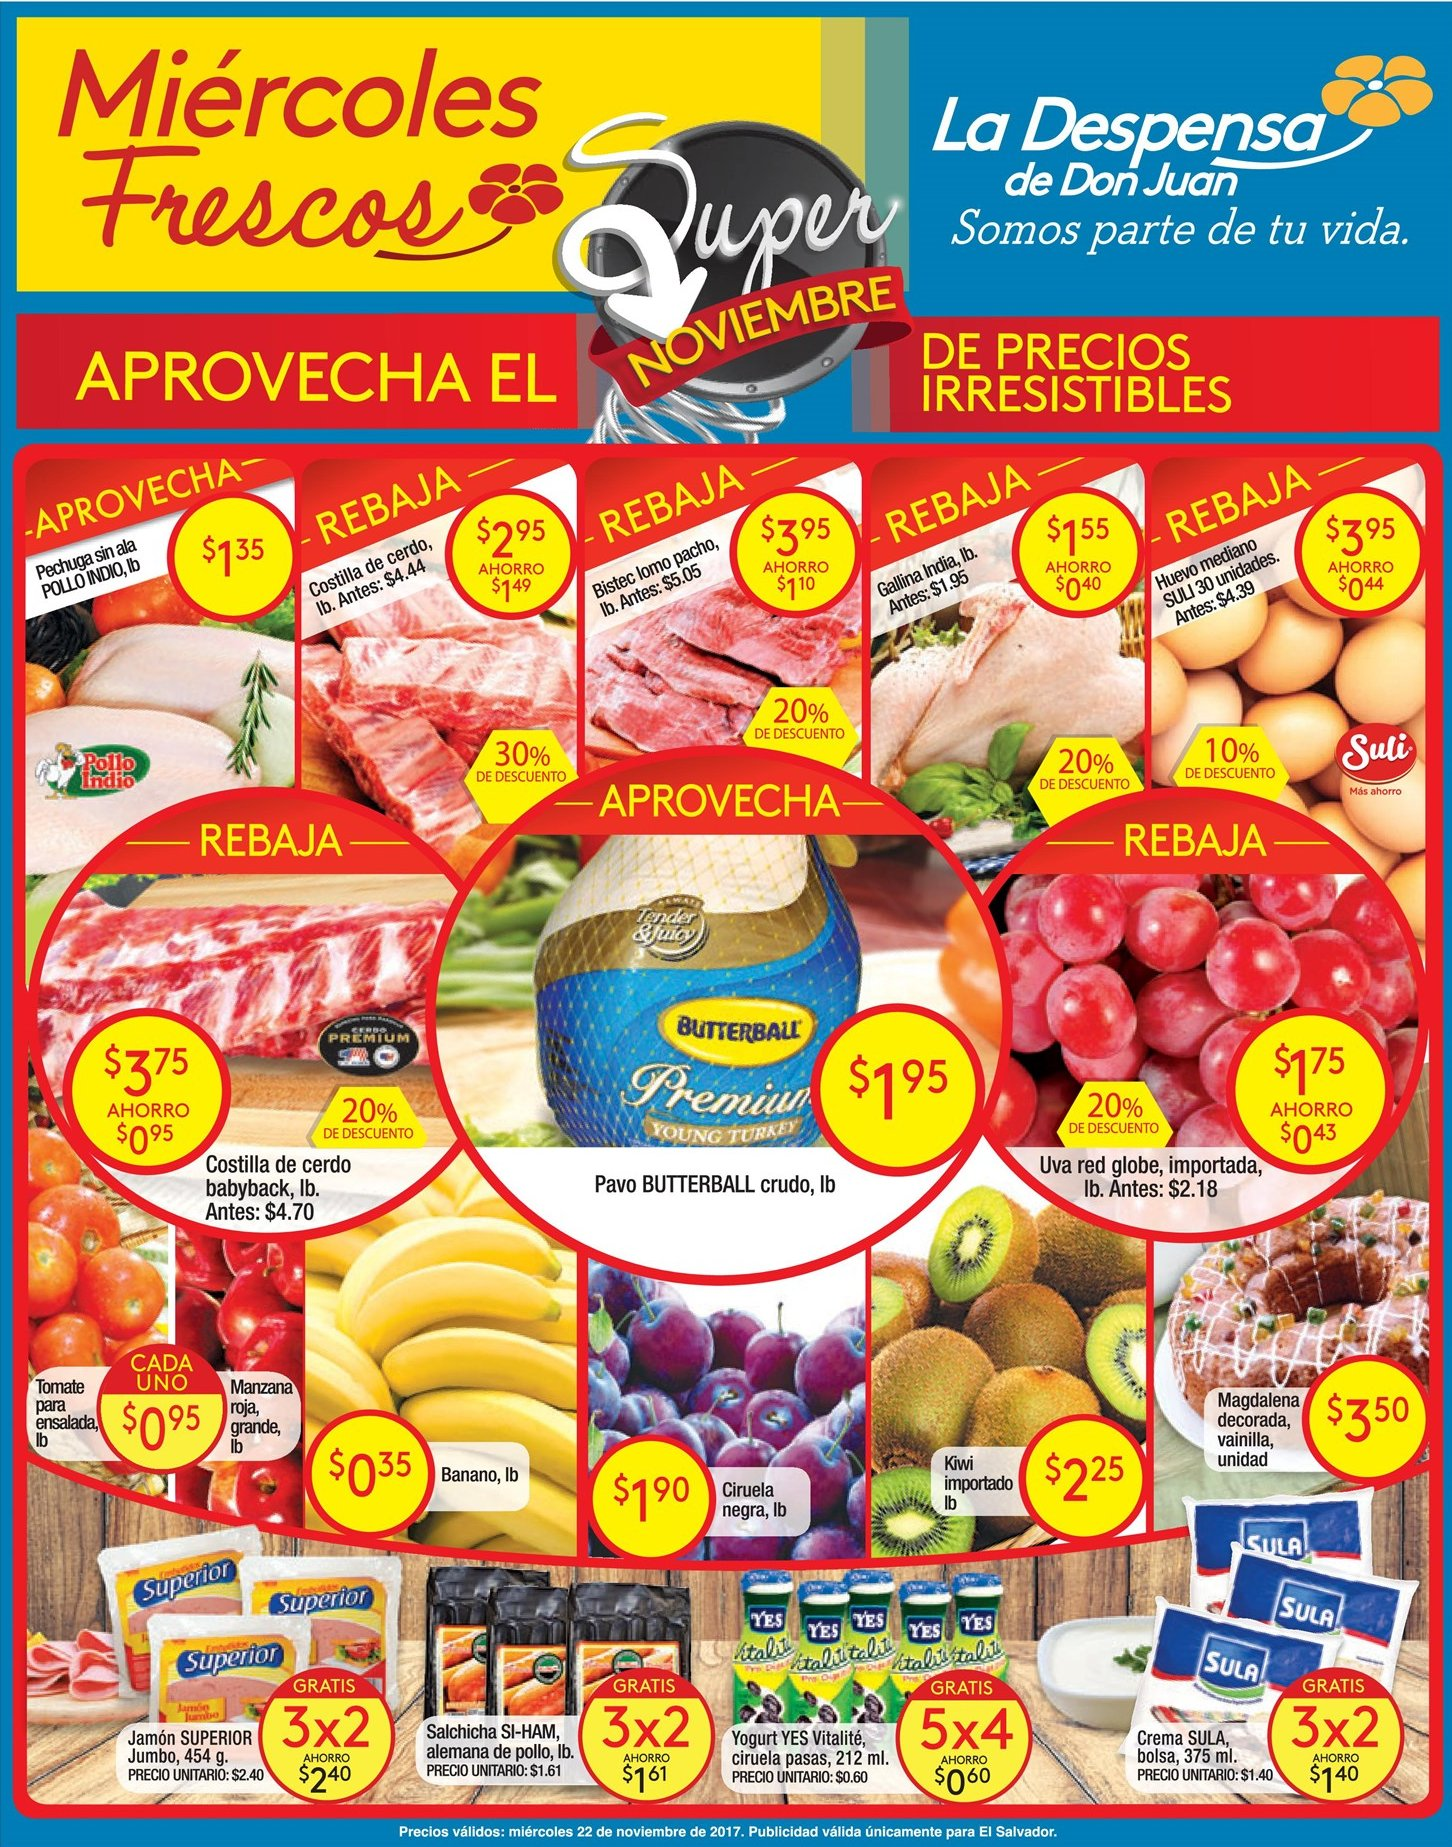 SUPER miercoles fresco BLACK muchas ofertas de la despensa - 22nov17